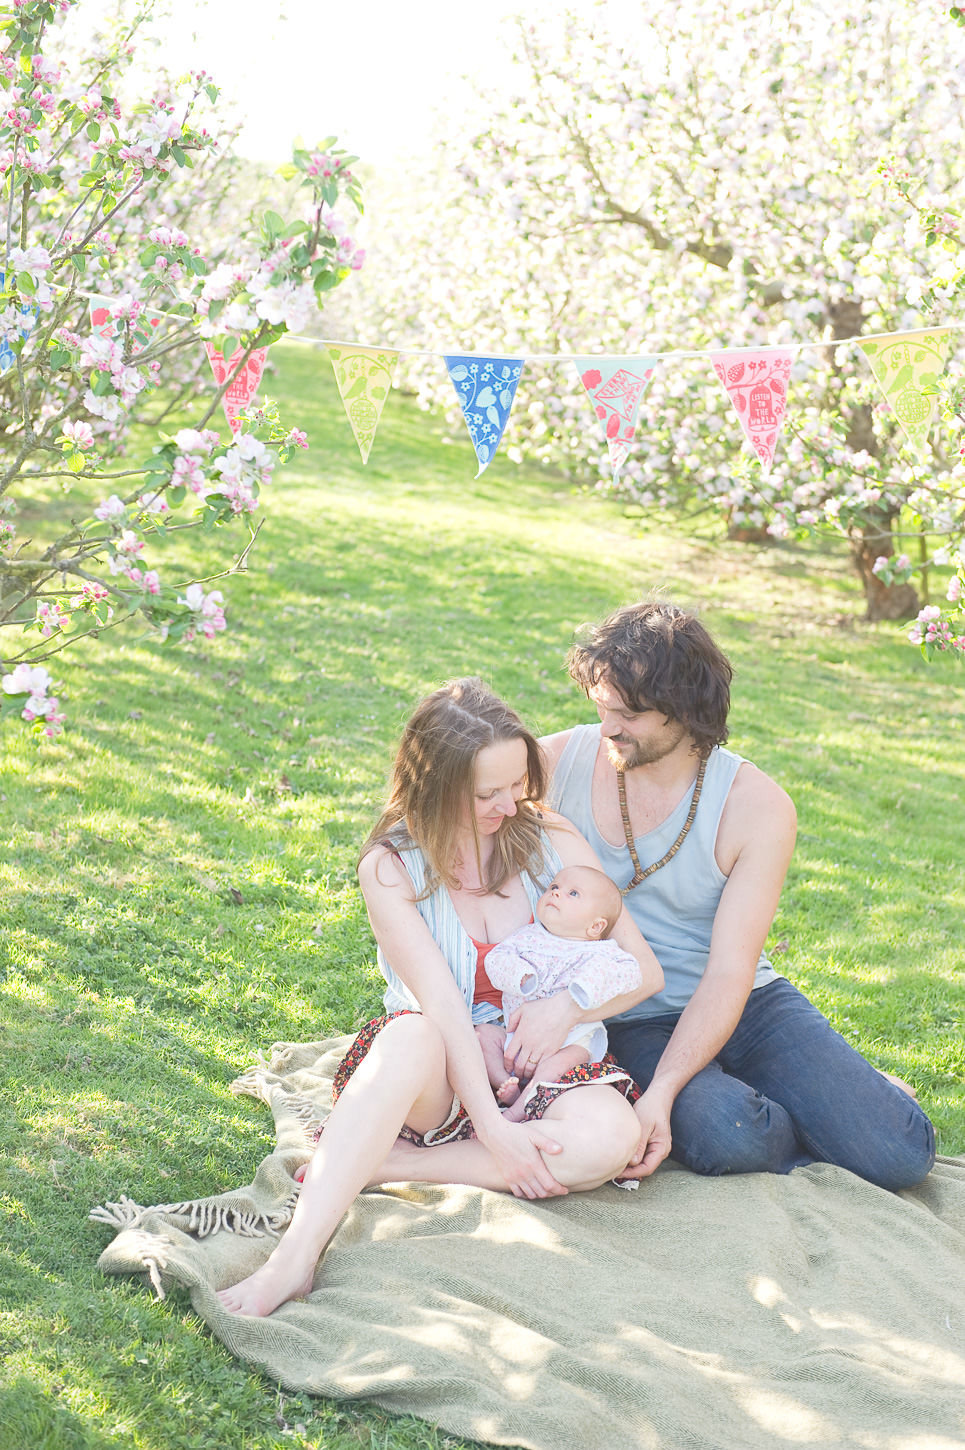 Family photography London and South east Susan Arnold Photographer-15